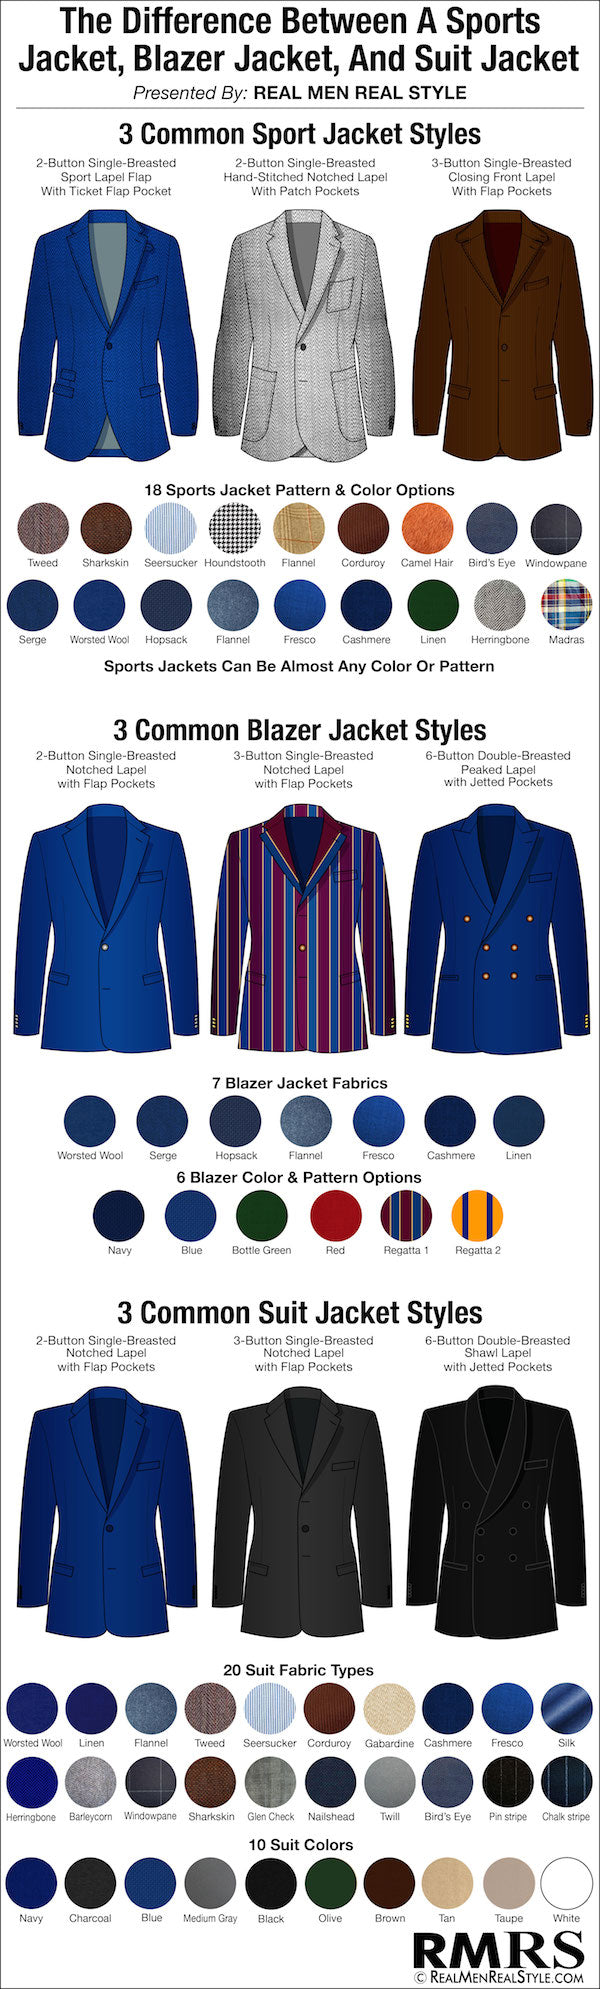 difference between a sport jacket, suit jacket & blazer jacket.